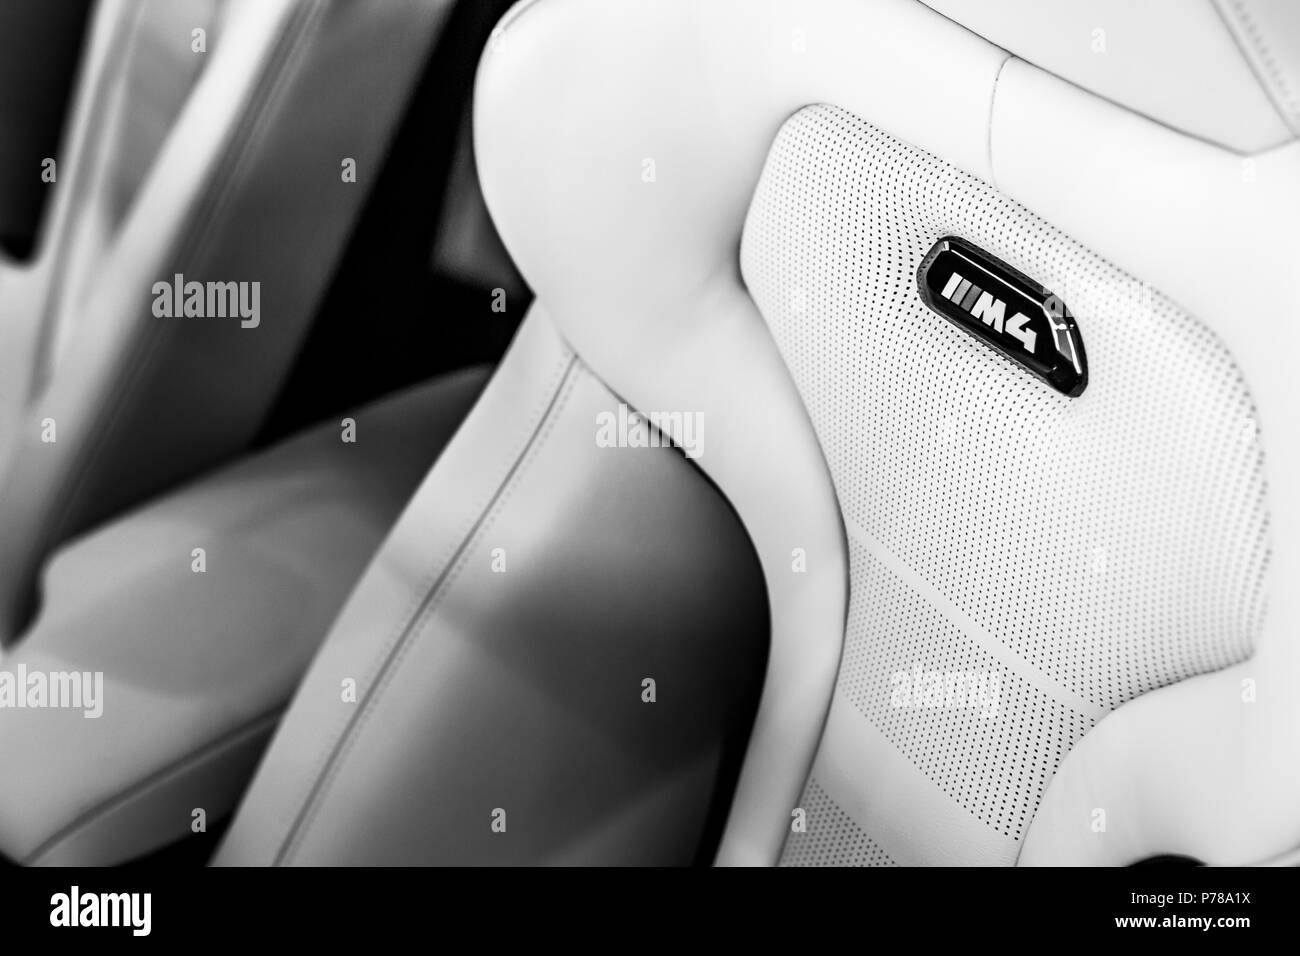 The seats of a BMW M4 - Stock Image